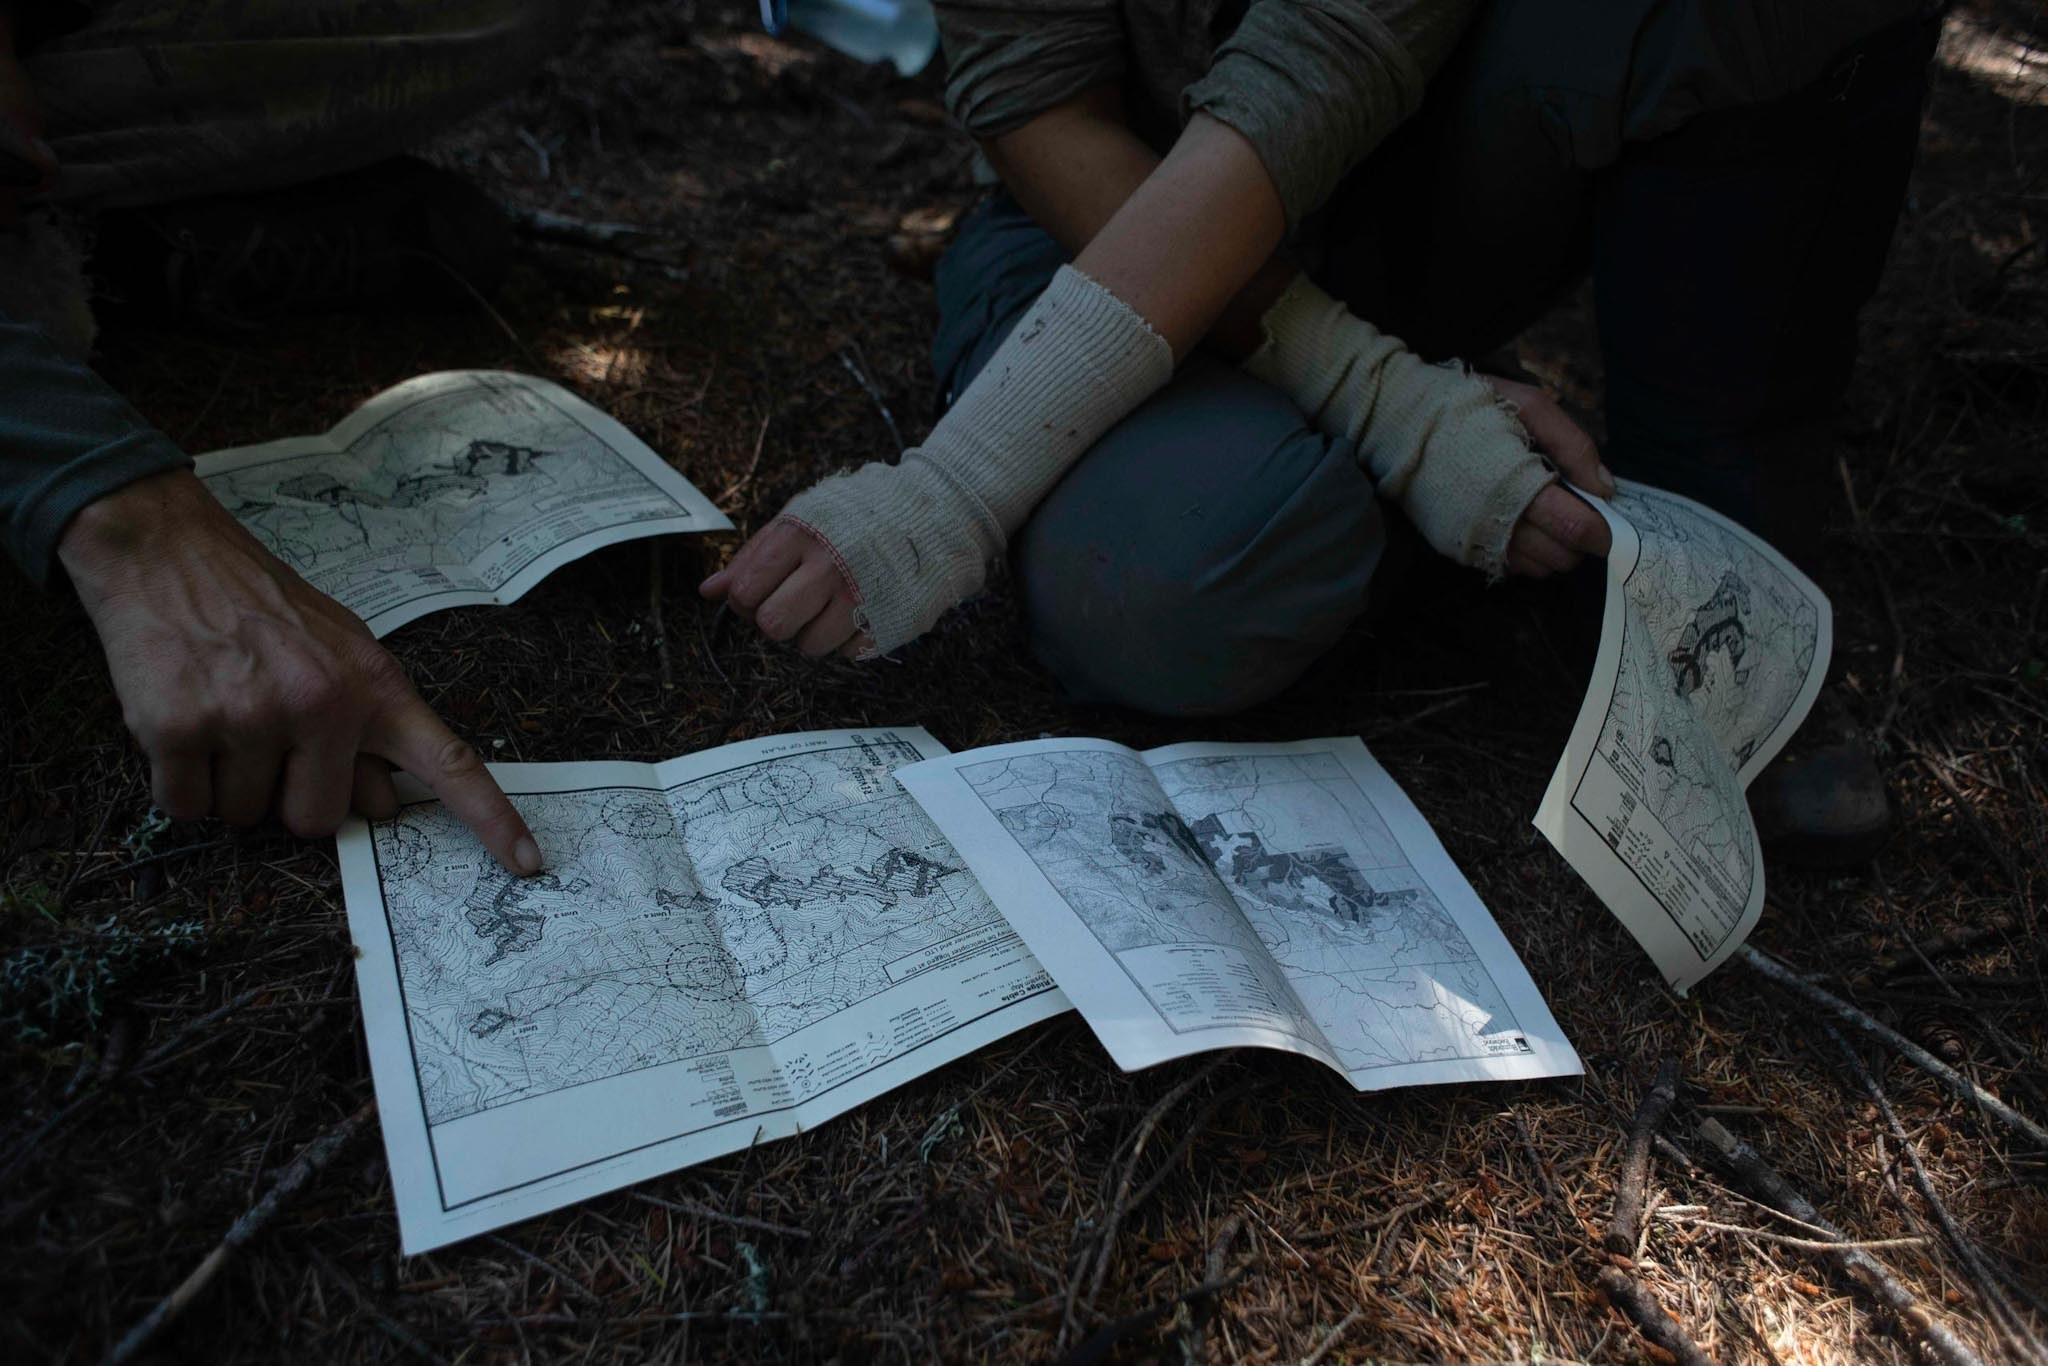 Two people study maps while sitting on the forest floor